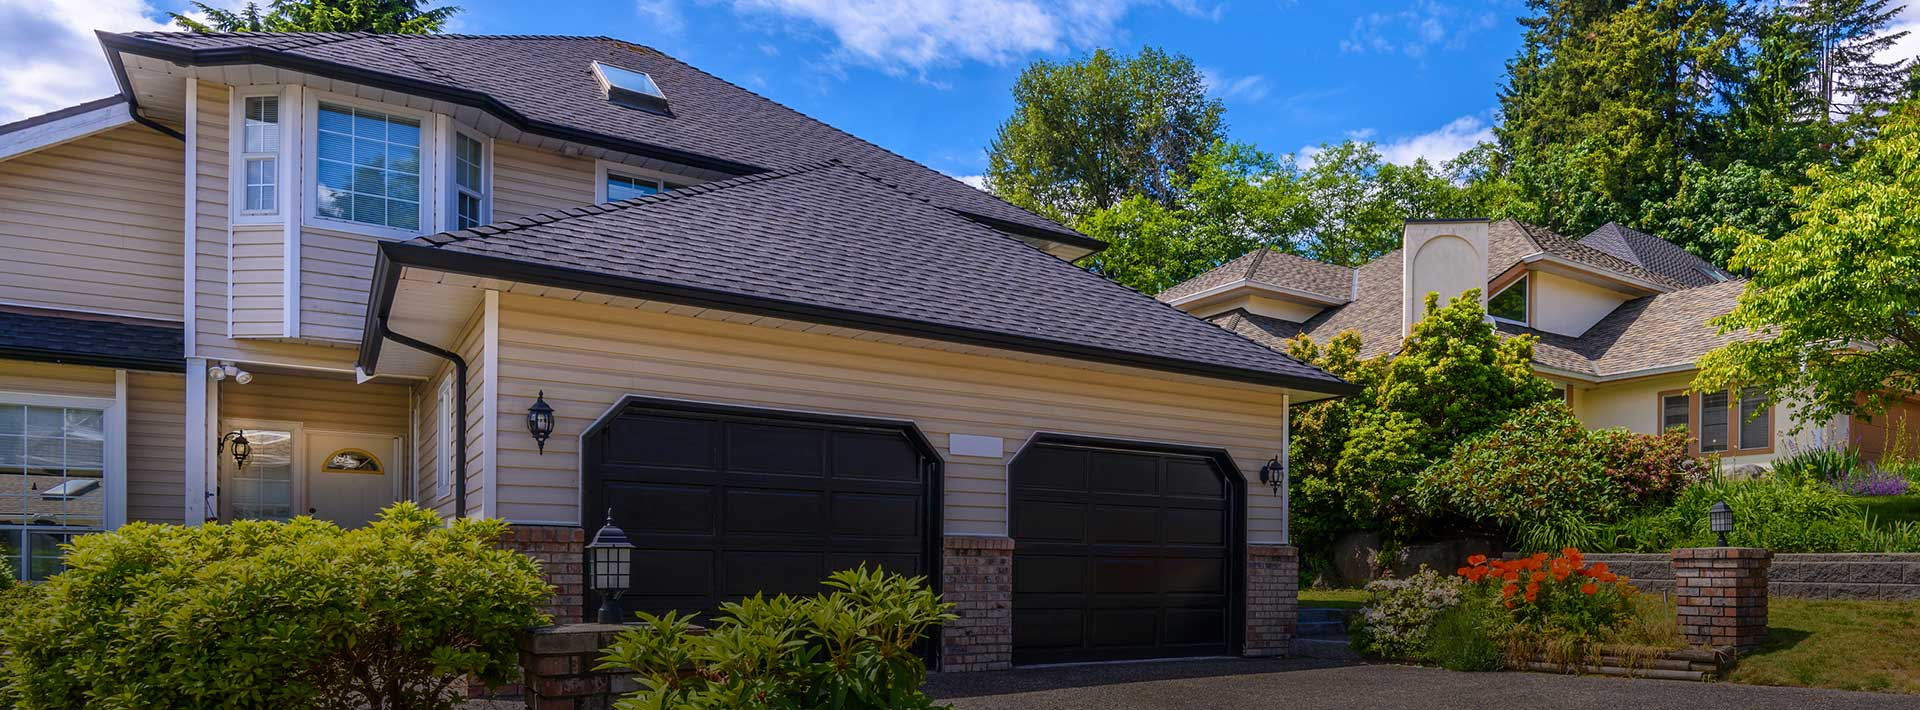 Residential Roofing Installation